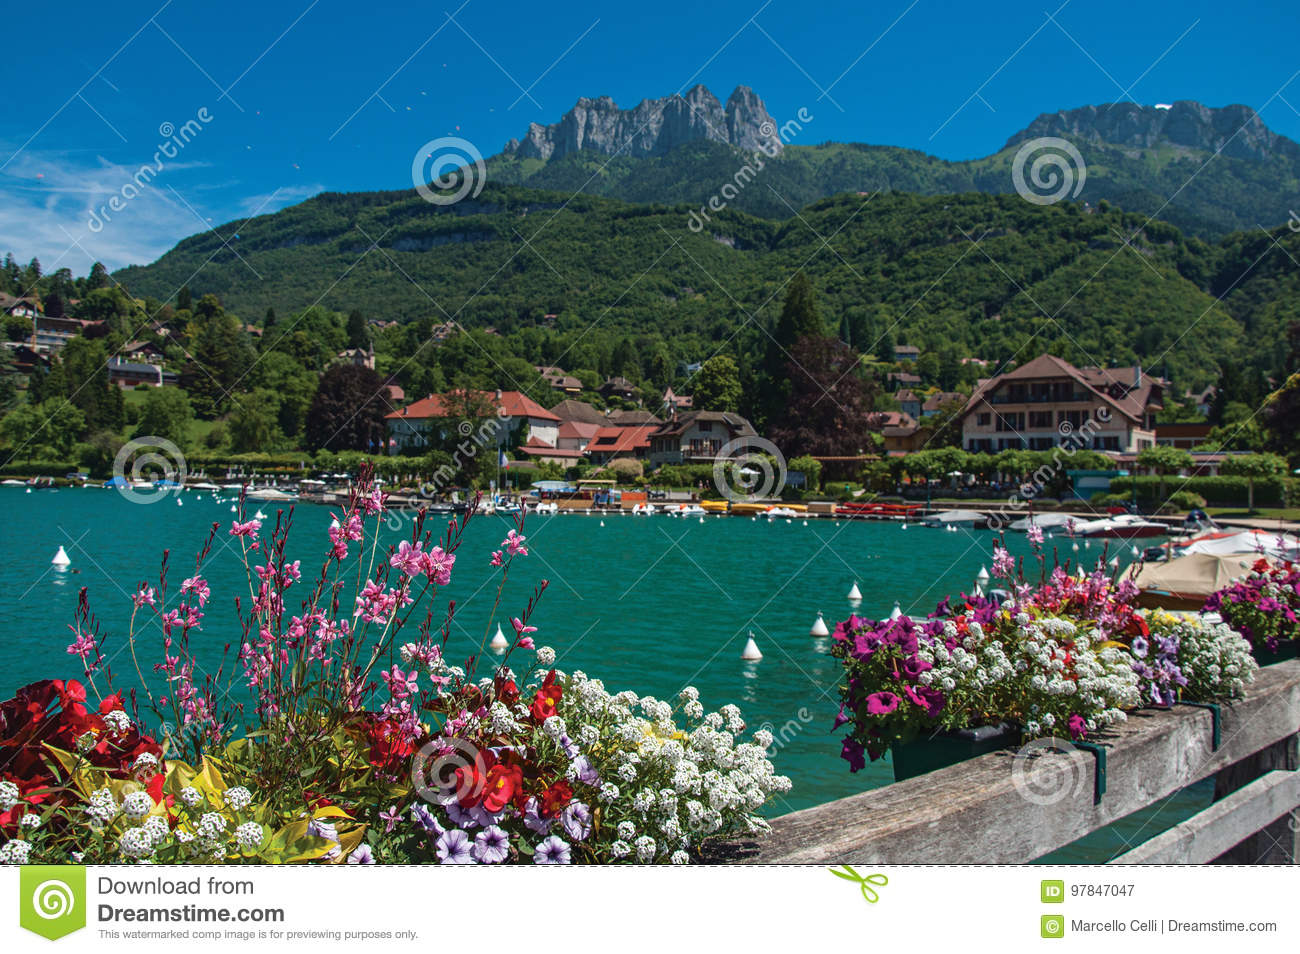 Pier with flowers on the lake of Annecy, in the village of Talloires.